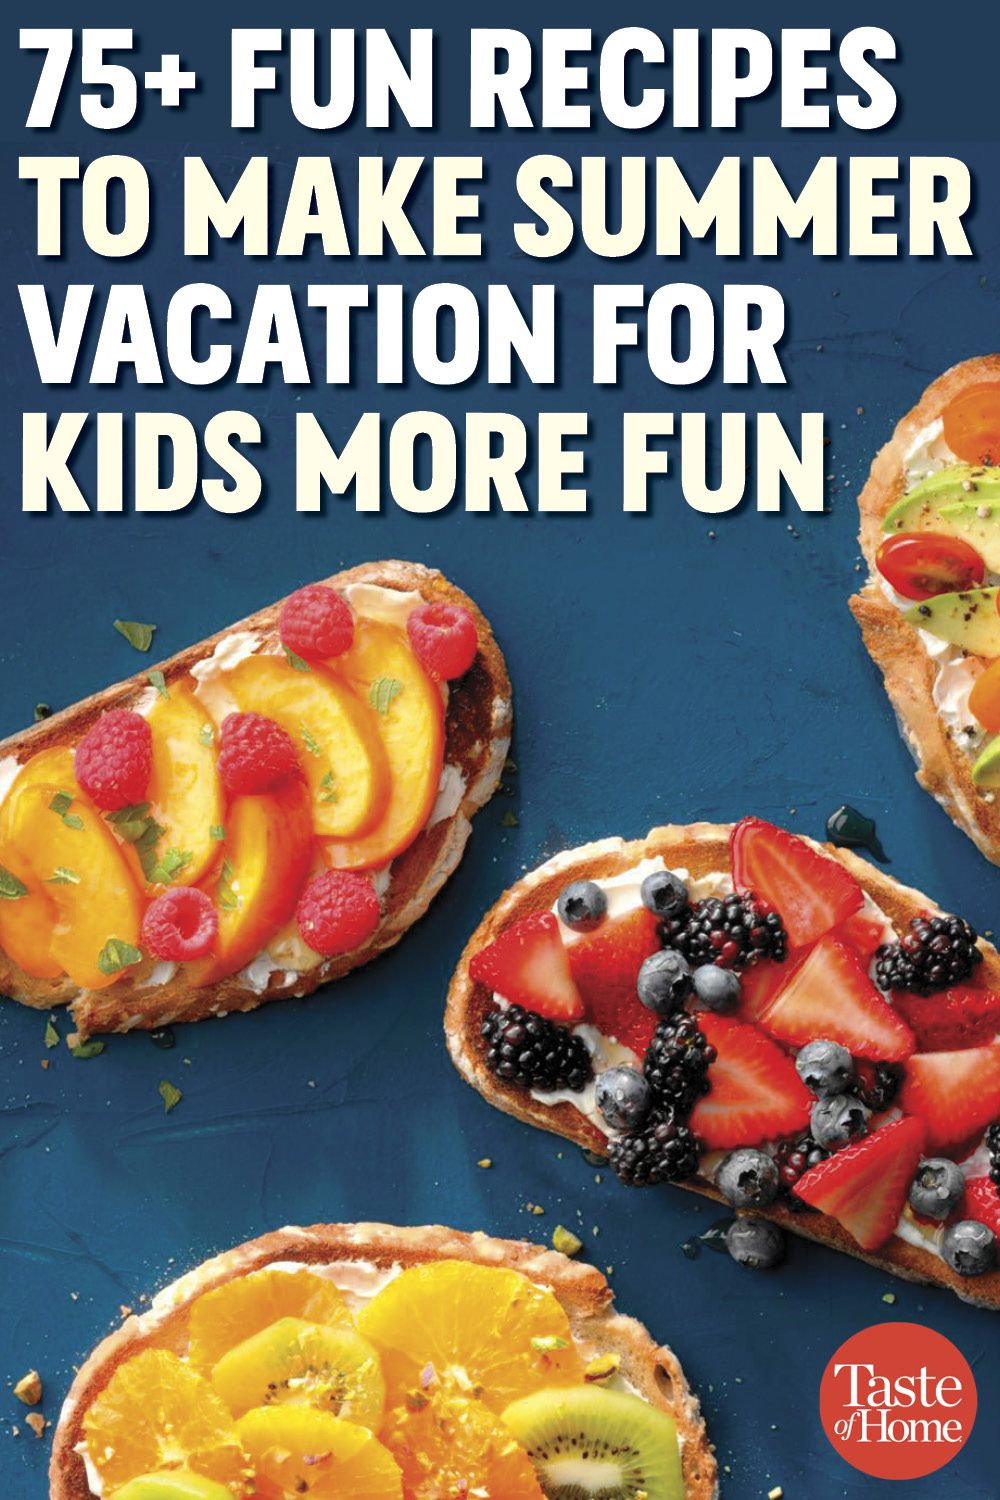 75+ Fun Recipes to Make Summer Vacation for Kids More Fun images